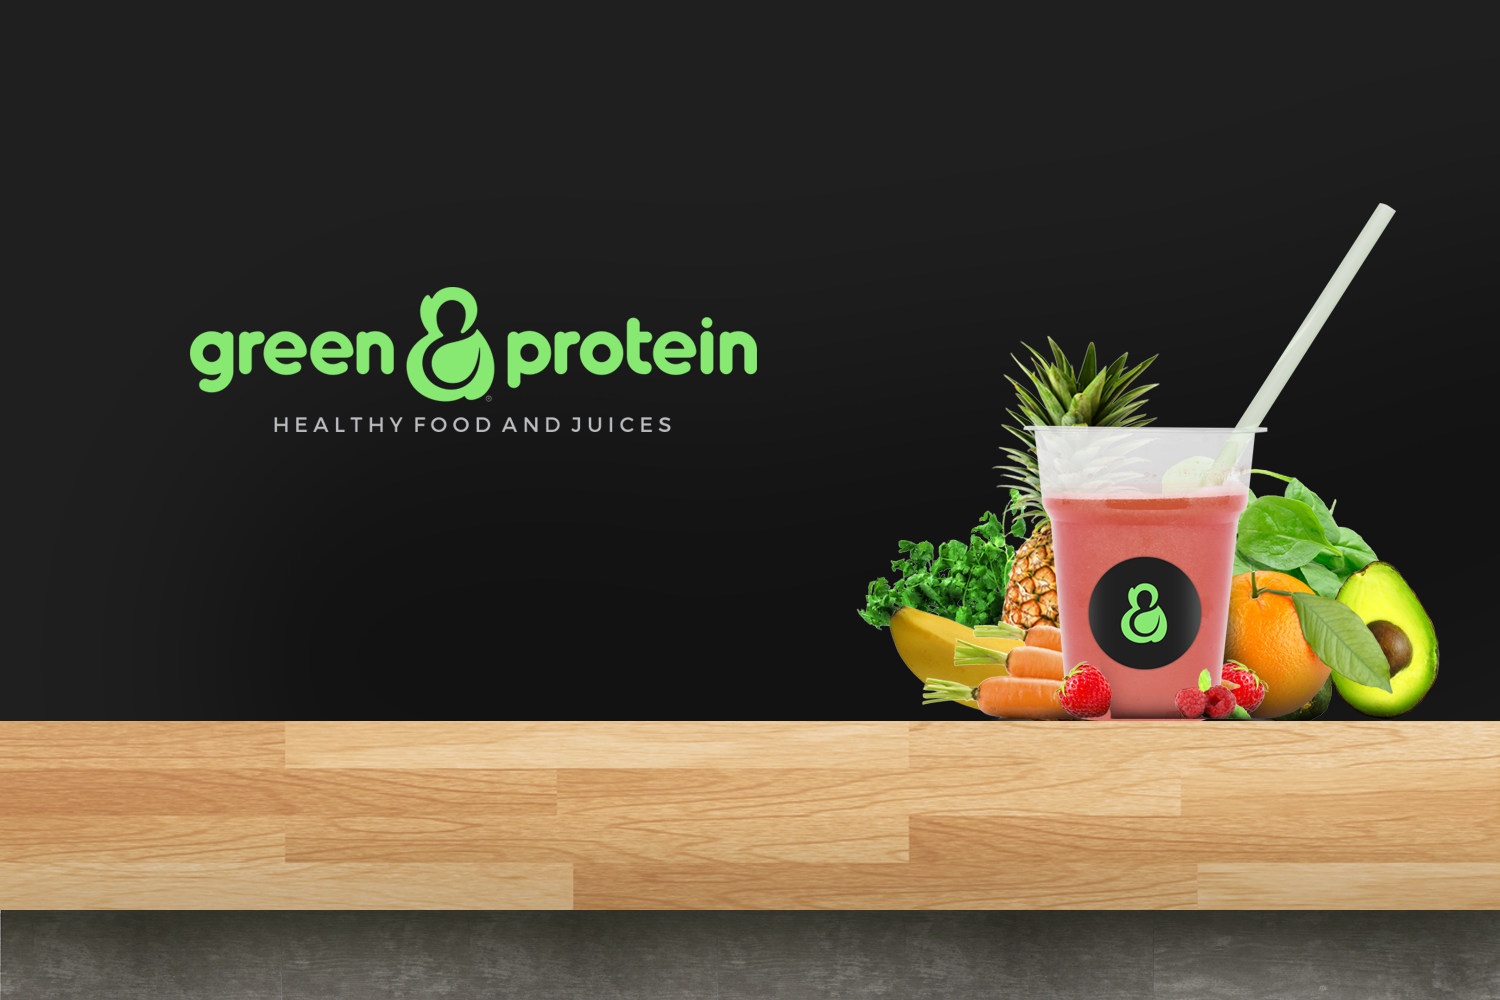 green and protein